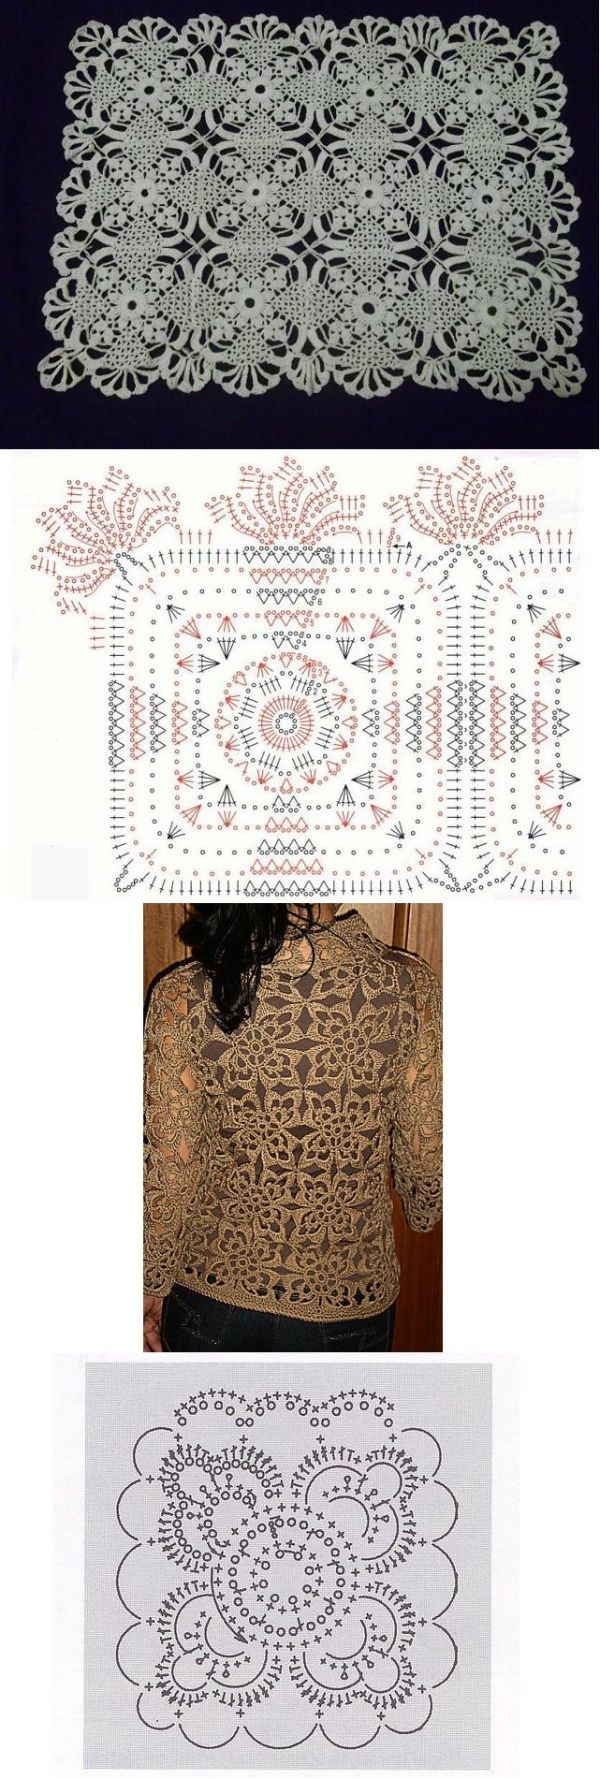 lacy crochet motifs - these are quite pretty! by dimitra.dimitriadou.16